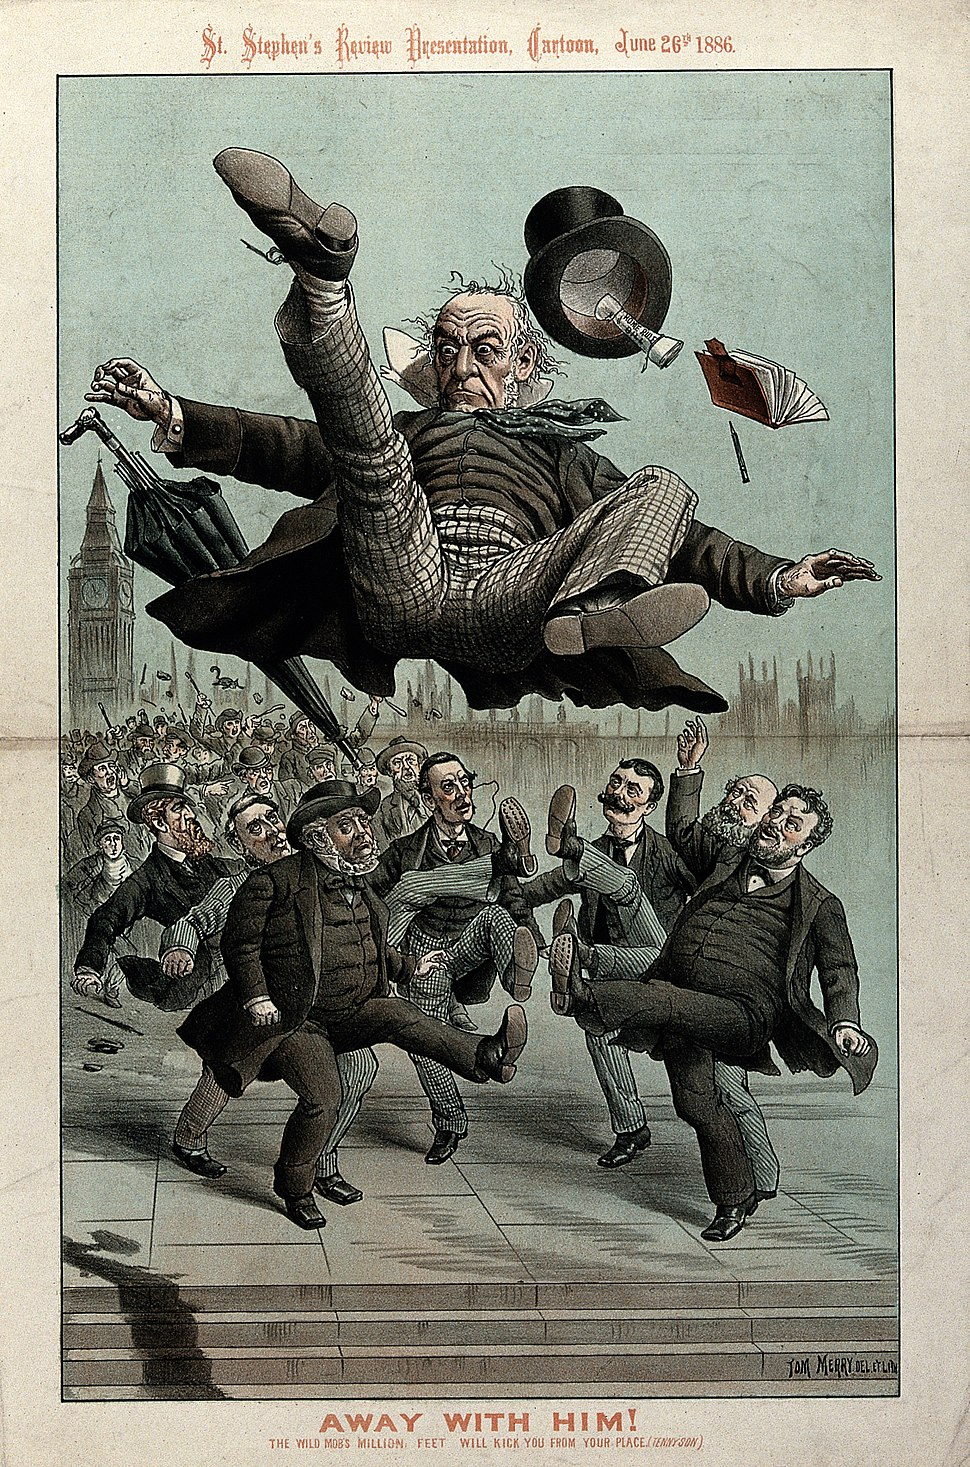 Gladstone being kicked in the air by angry men Wellcome V0050369